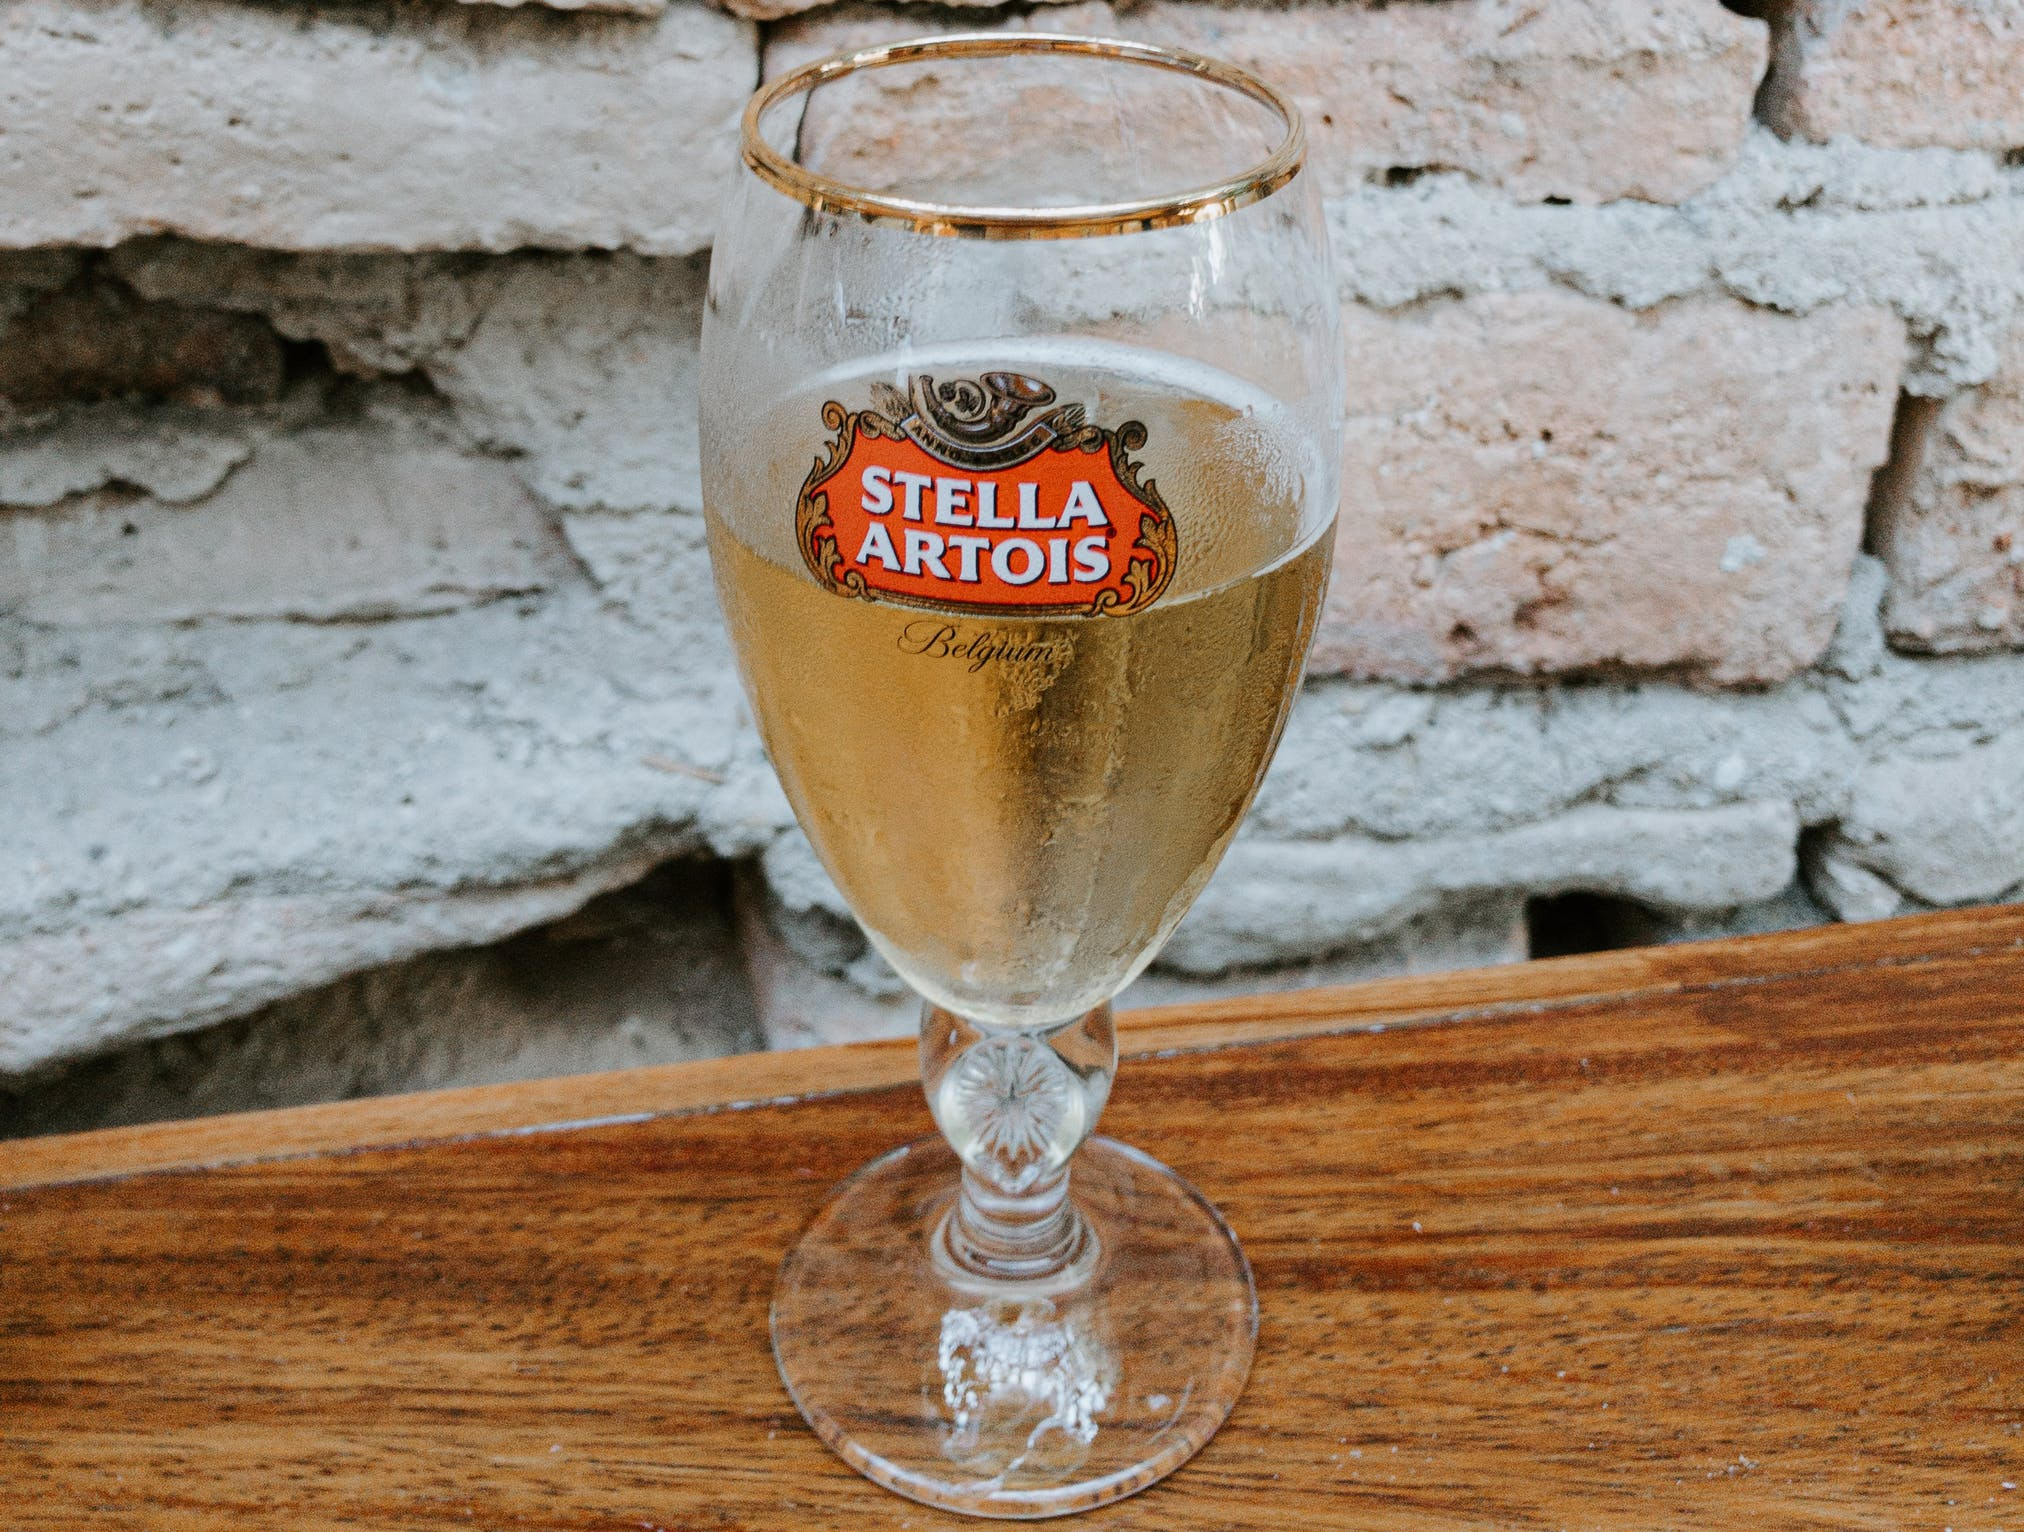 Glass of Stella Artois on table next to brick wall